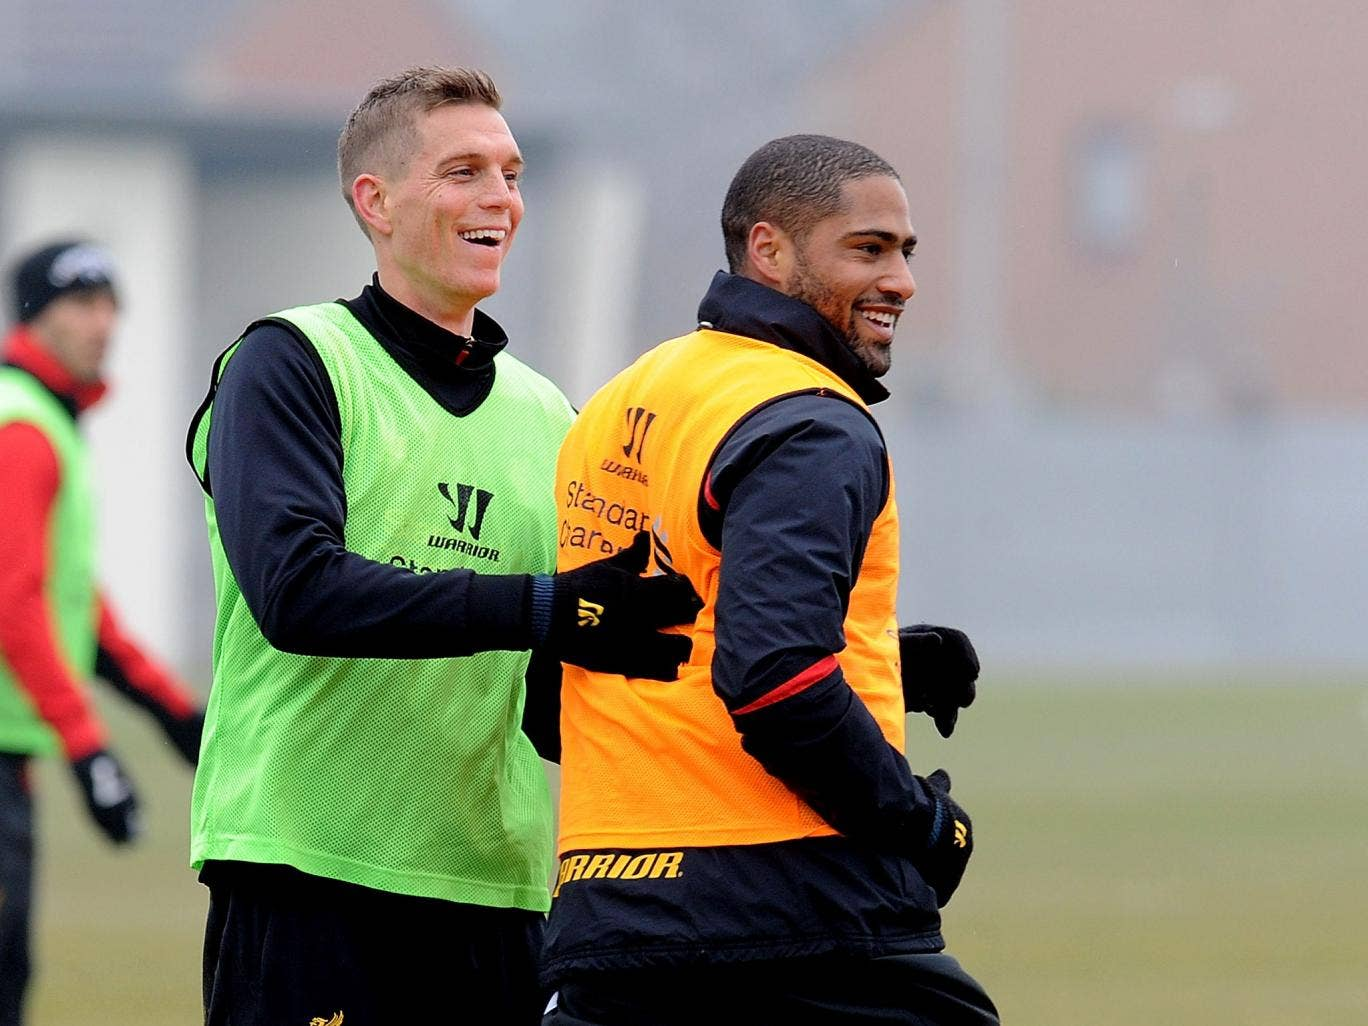 Daniel Agger and Glen Johnson in training together early this season